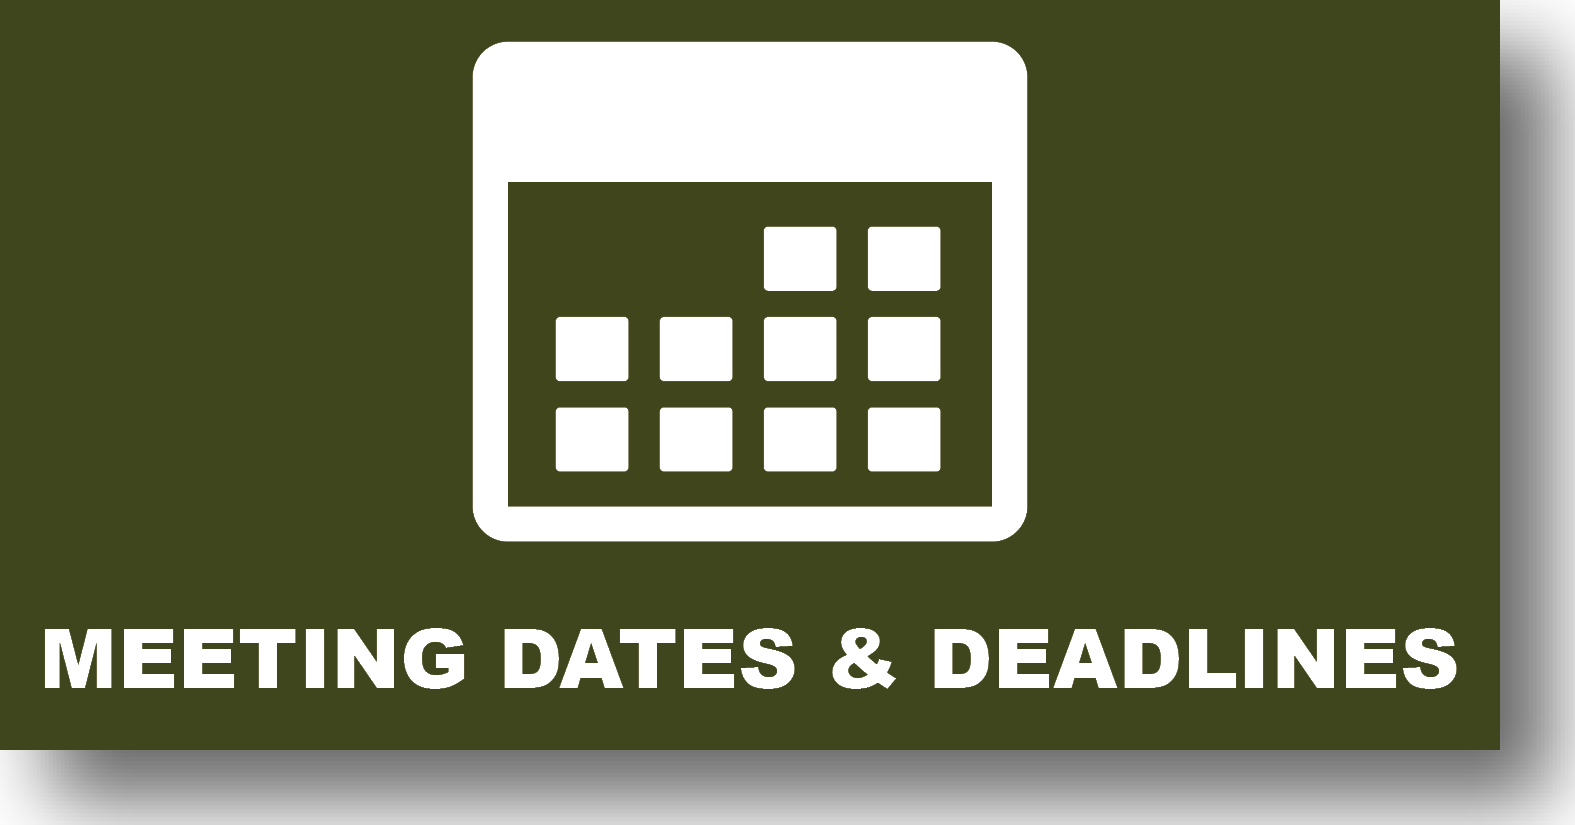 Meeting Dates & Deadlines